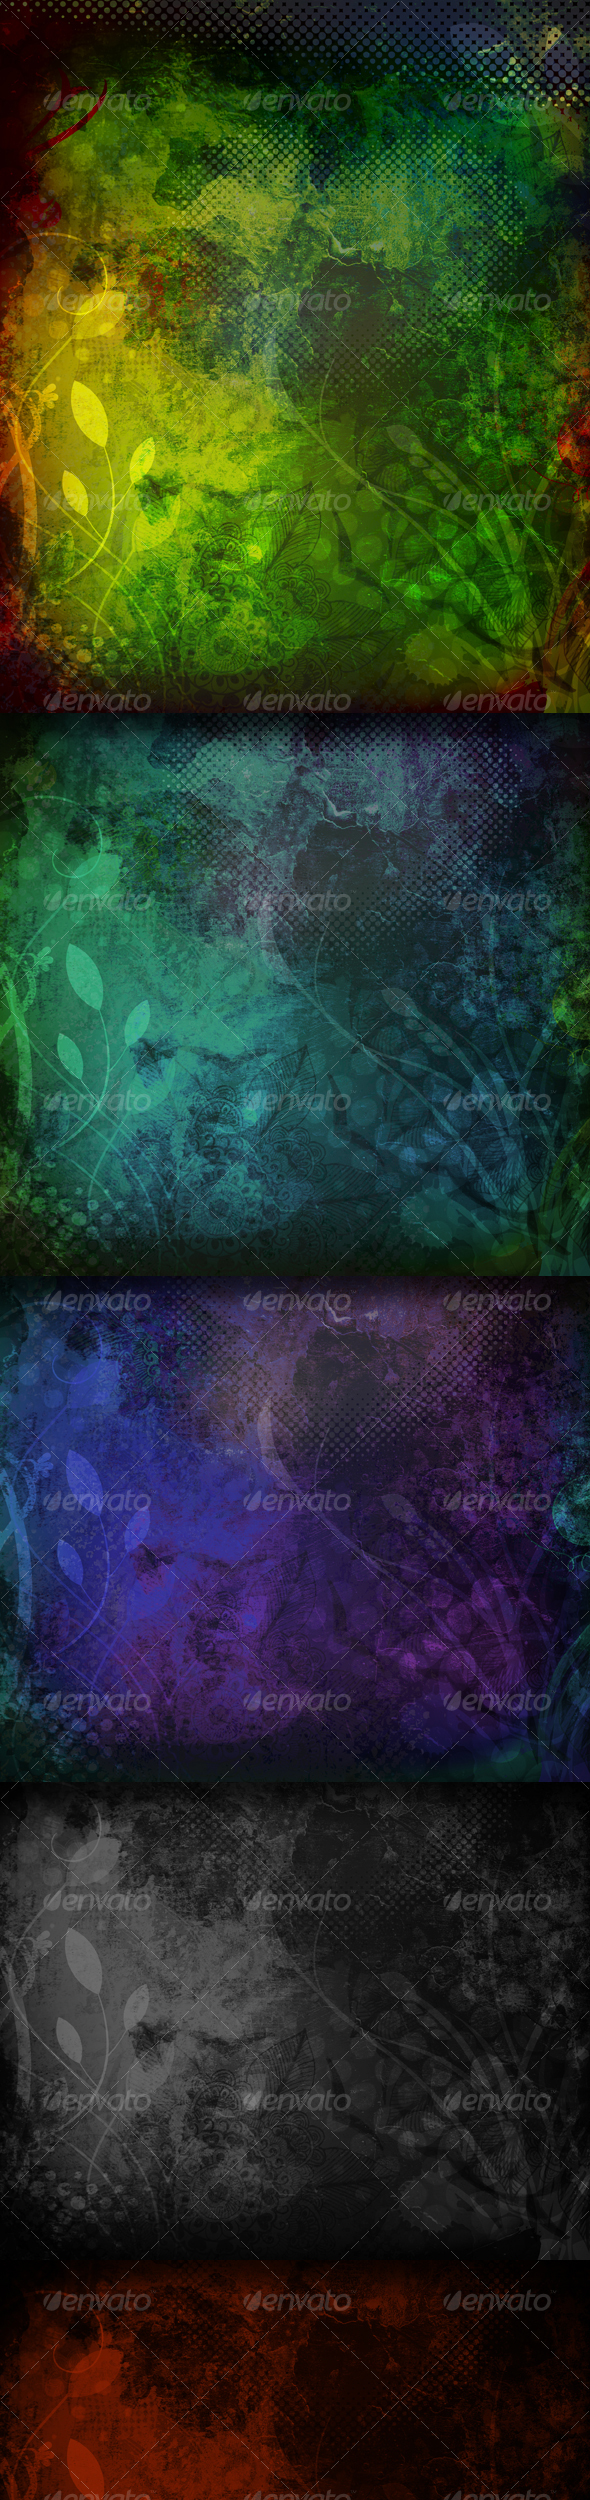 Grunge Dark Flourish Textures and Backgrounds